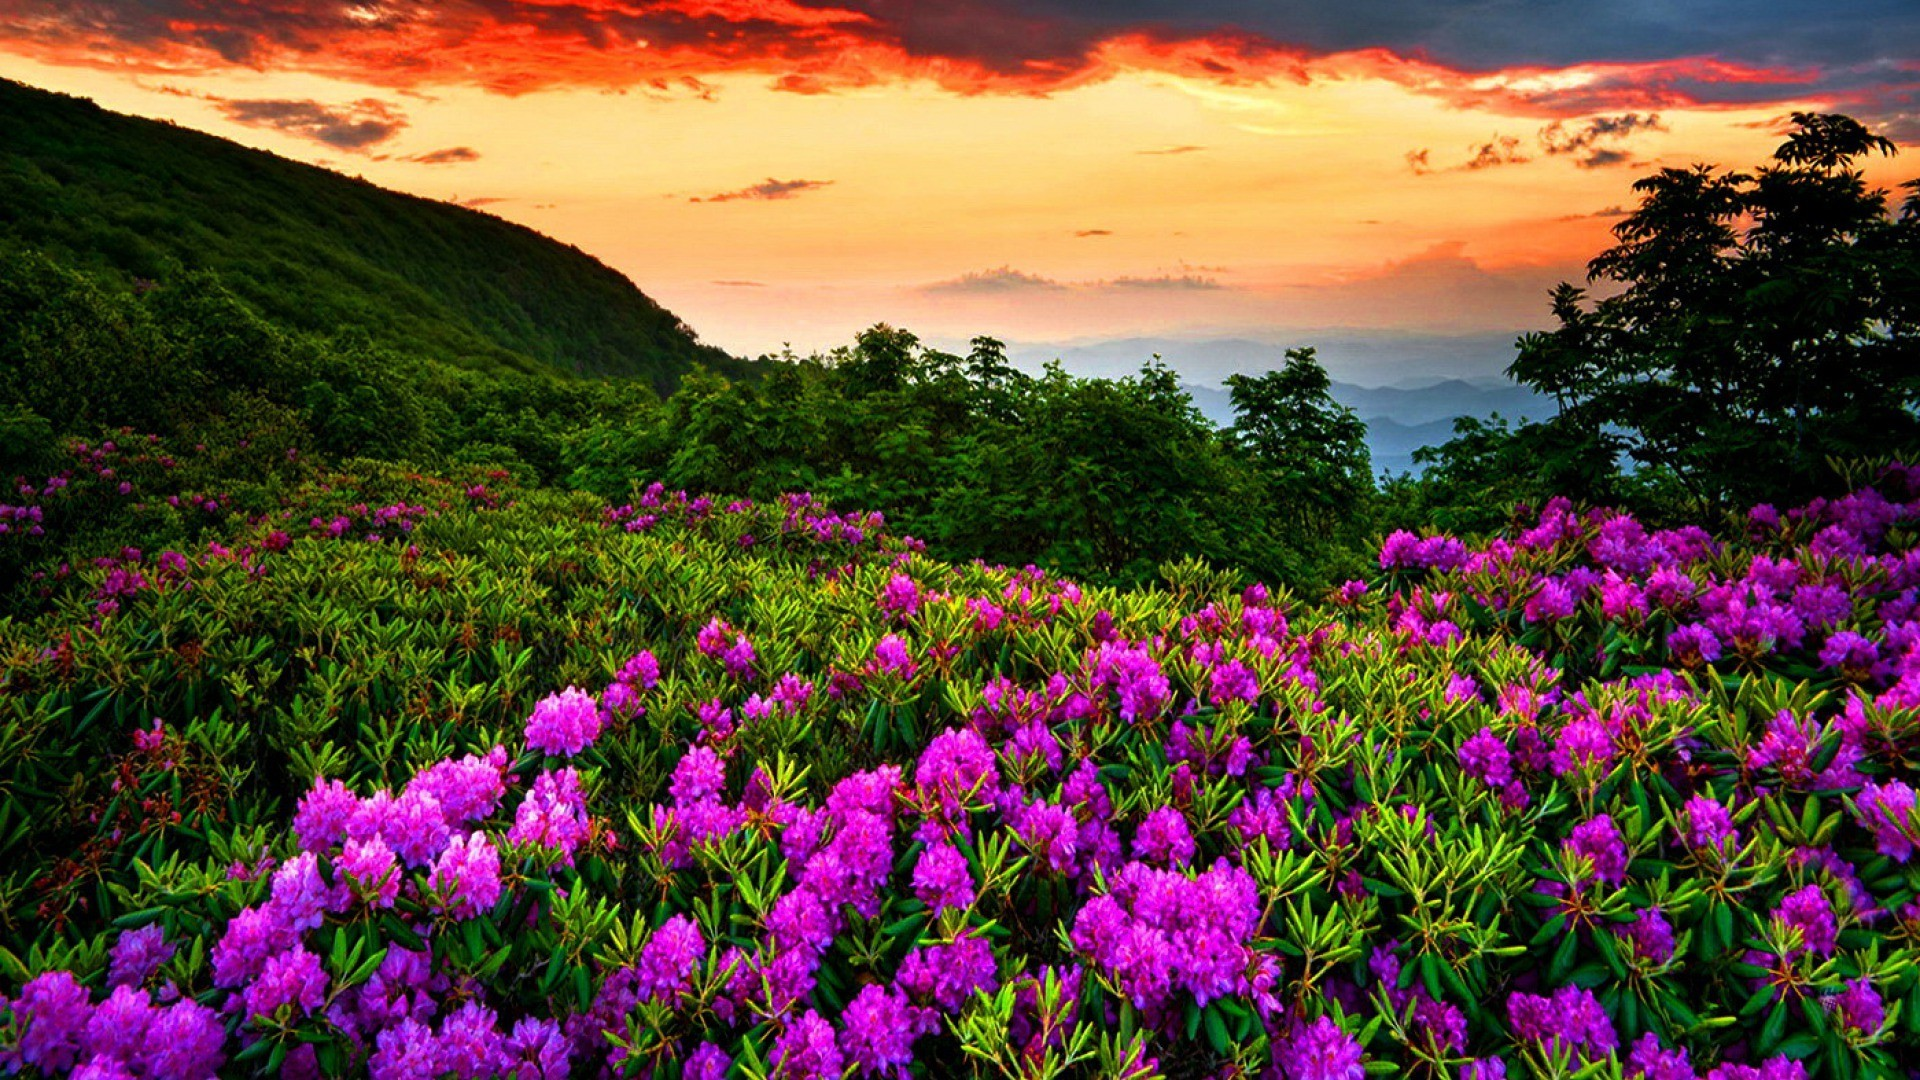 1920x1080 Spring Nature Live Wallpaper Android Apps on Google Play